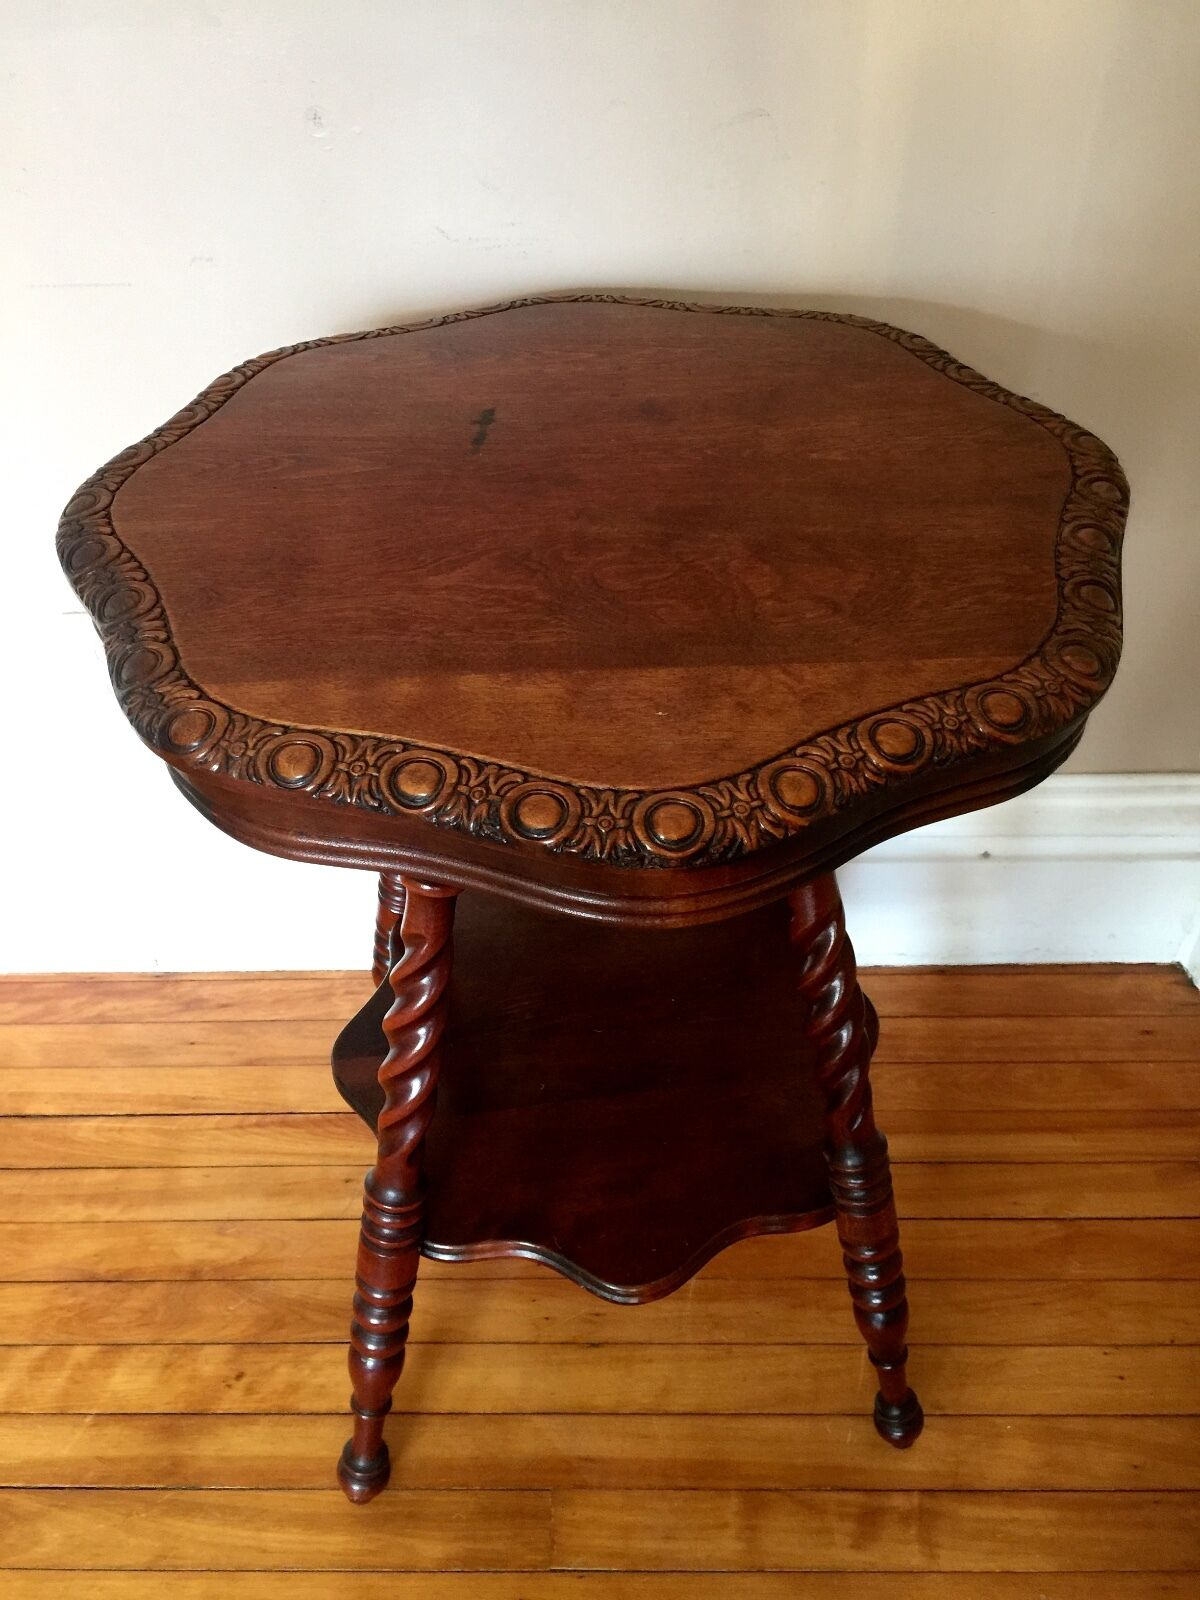 Antique Vtg Lamp Table With Rope Turned Legs - $449.99